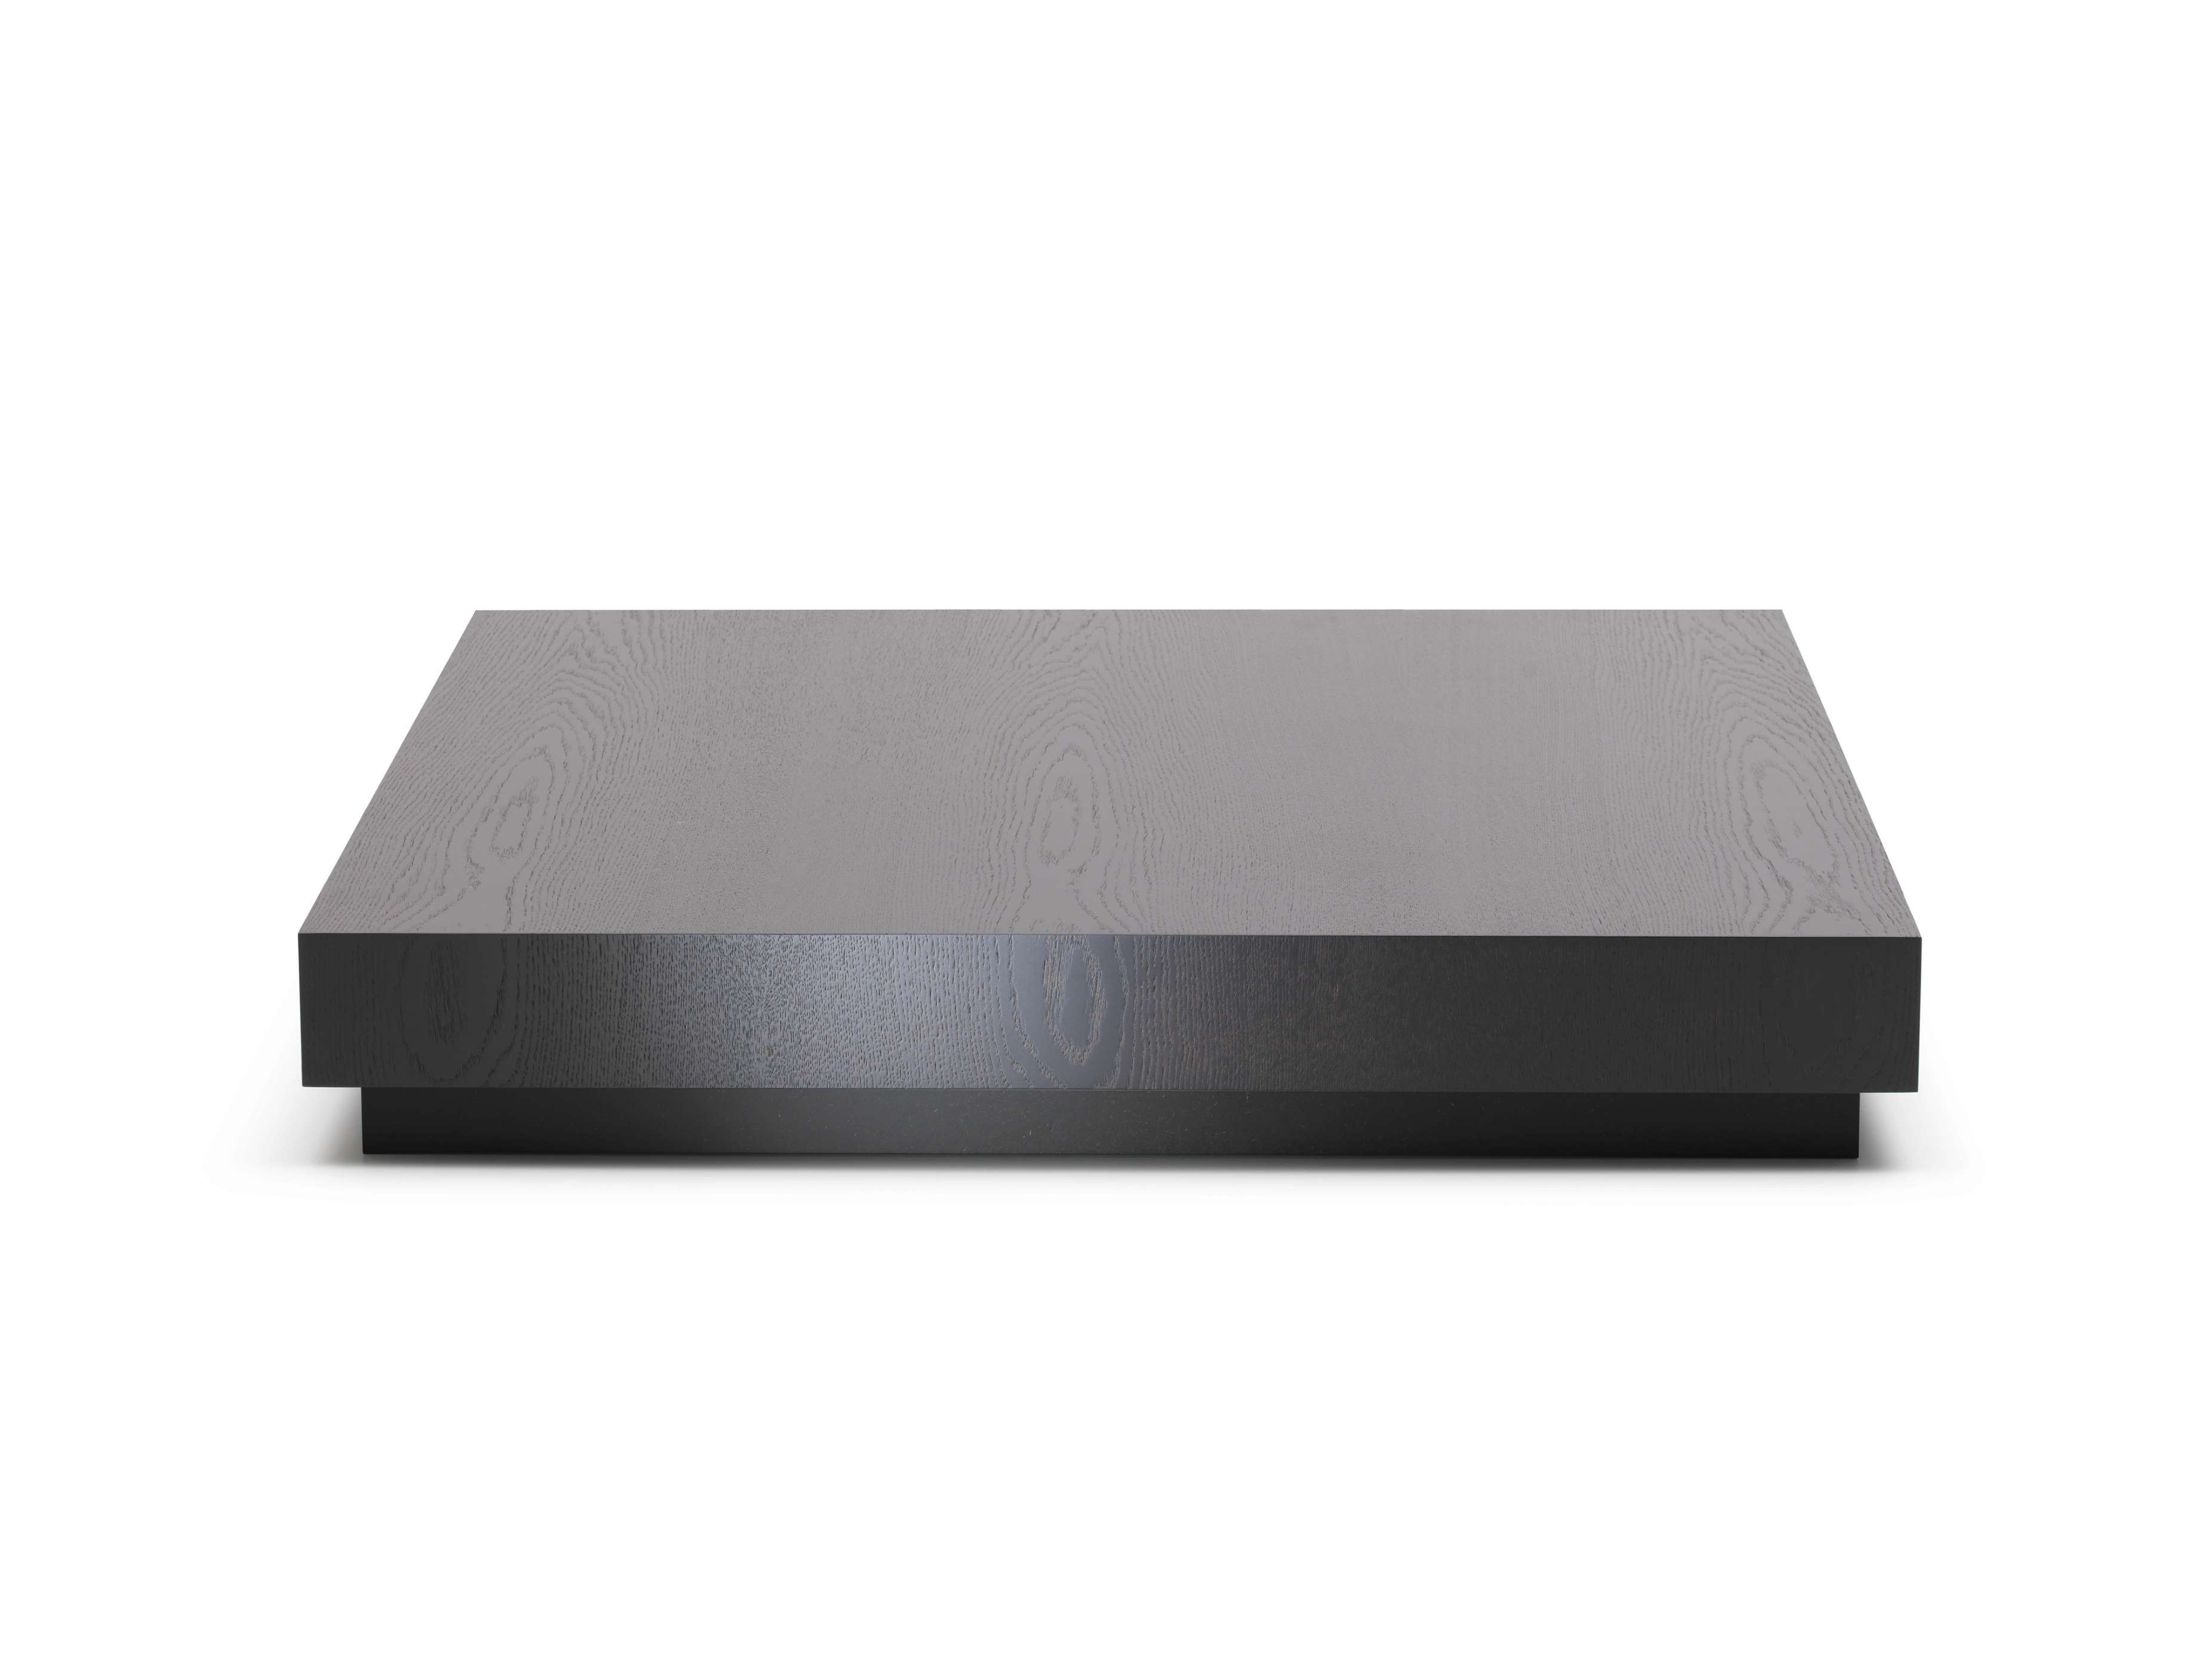 Square Wood Low Profile Coffee Table Painted With Black Color For In Latest Low Square Wooden Coffee Tables (View 18 of 20)